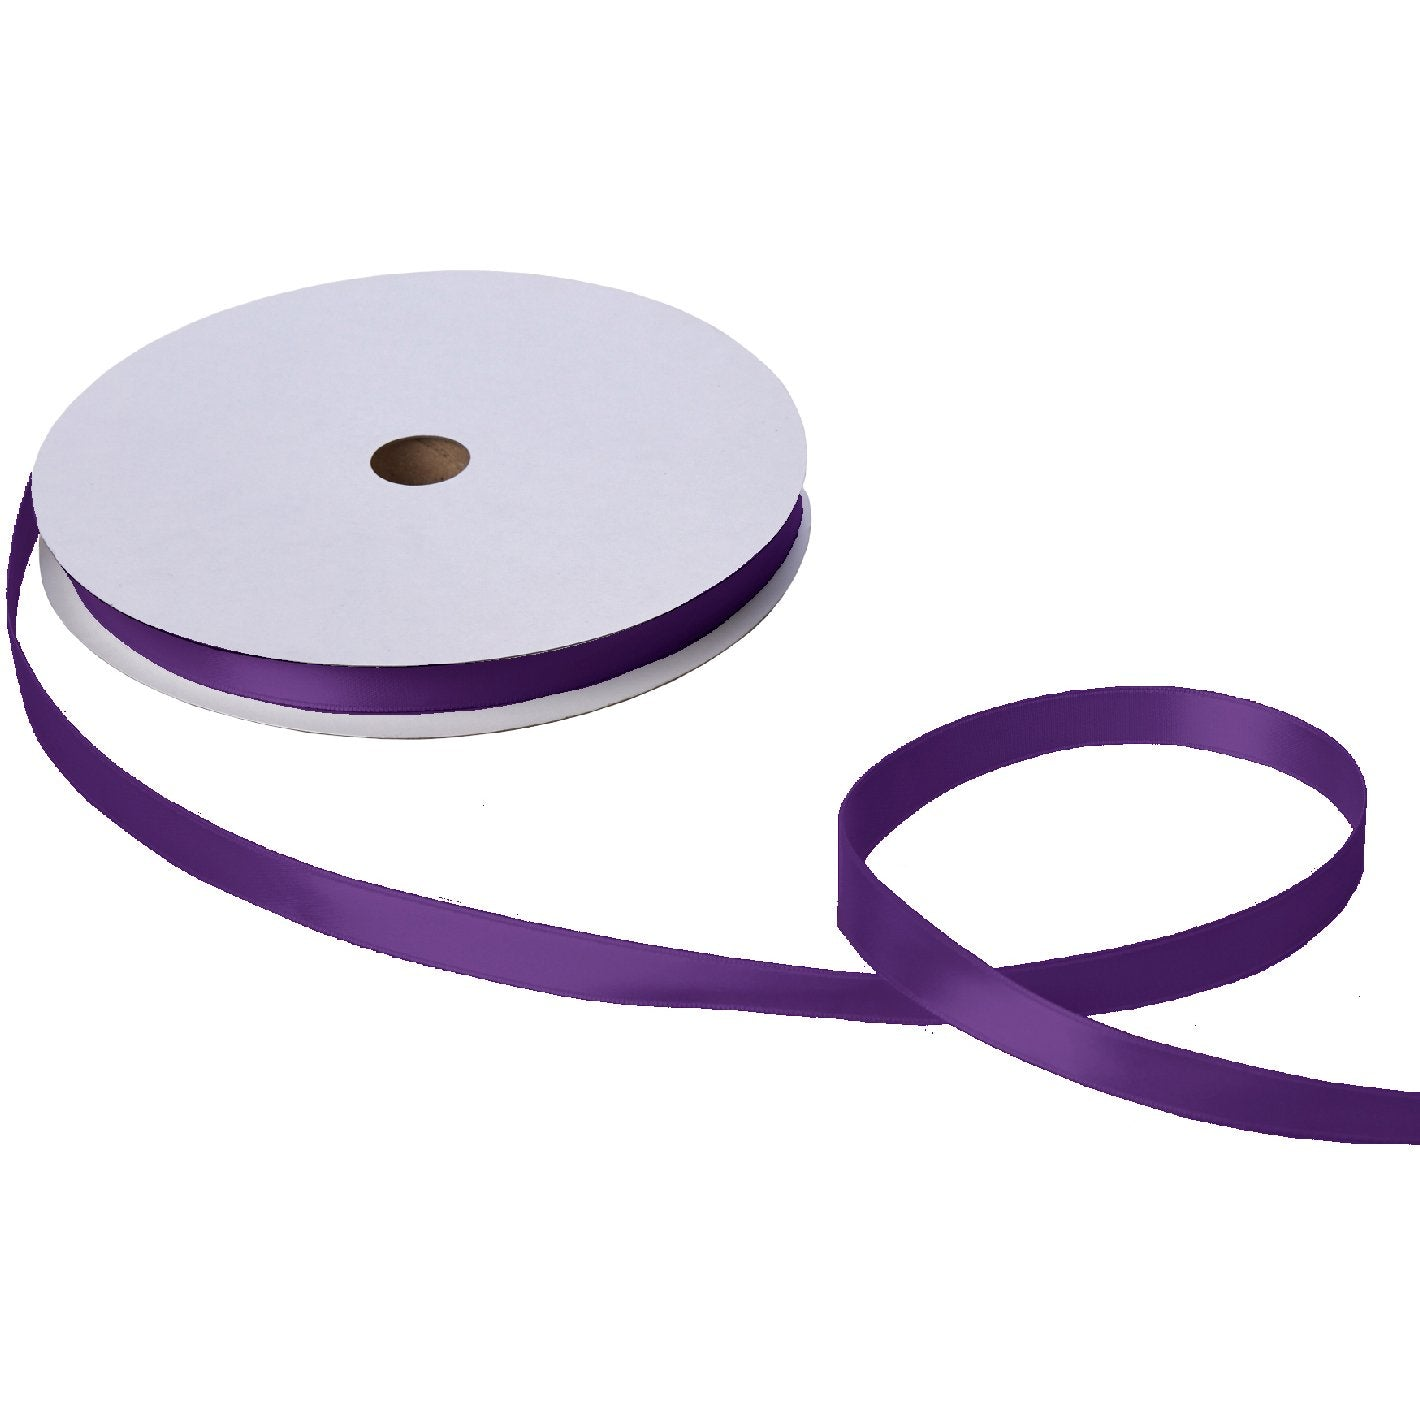 "Jillson & Roberts Double-Faced Satin Ribbon, 5/8"" Wide x 100 Yards, Purple"